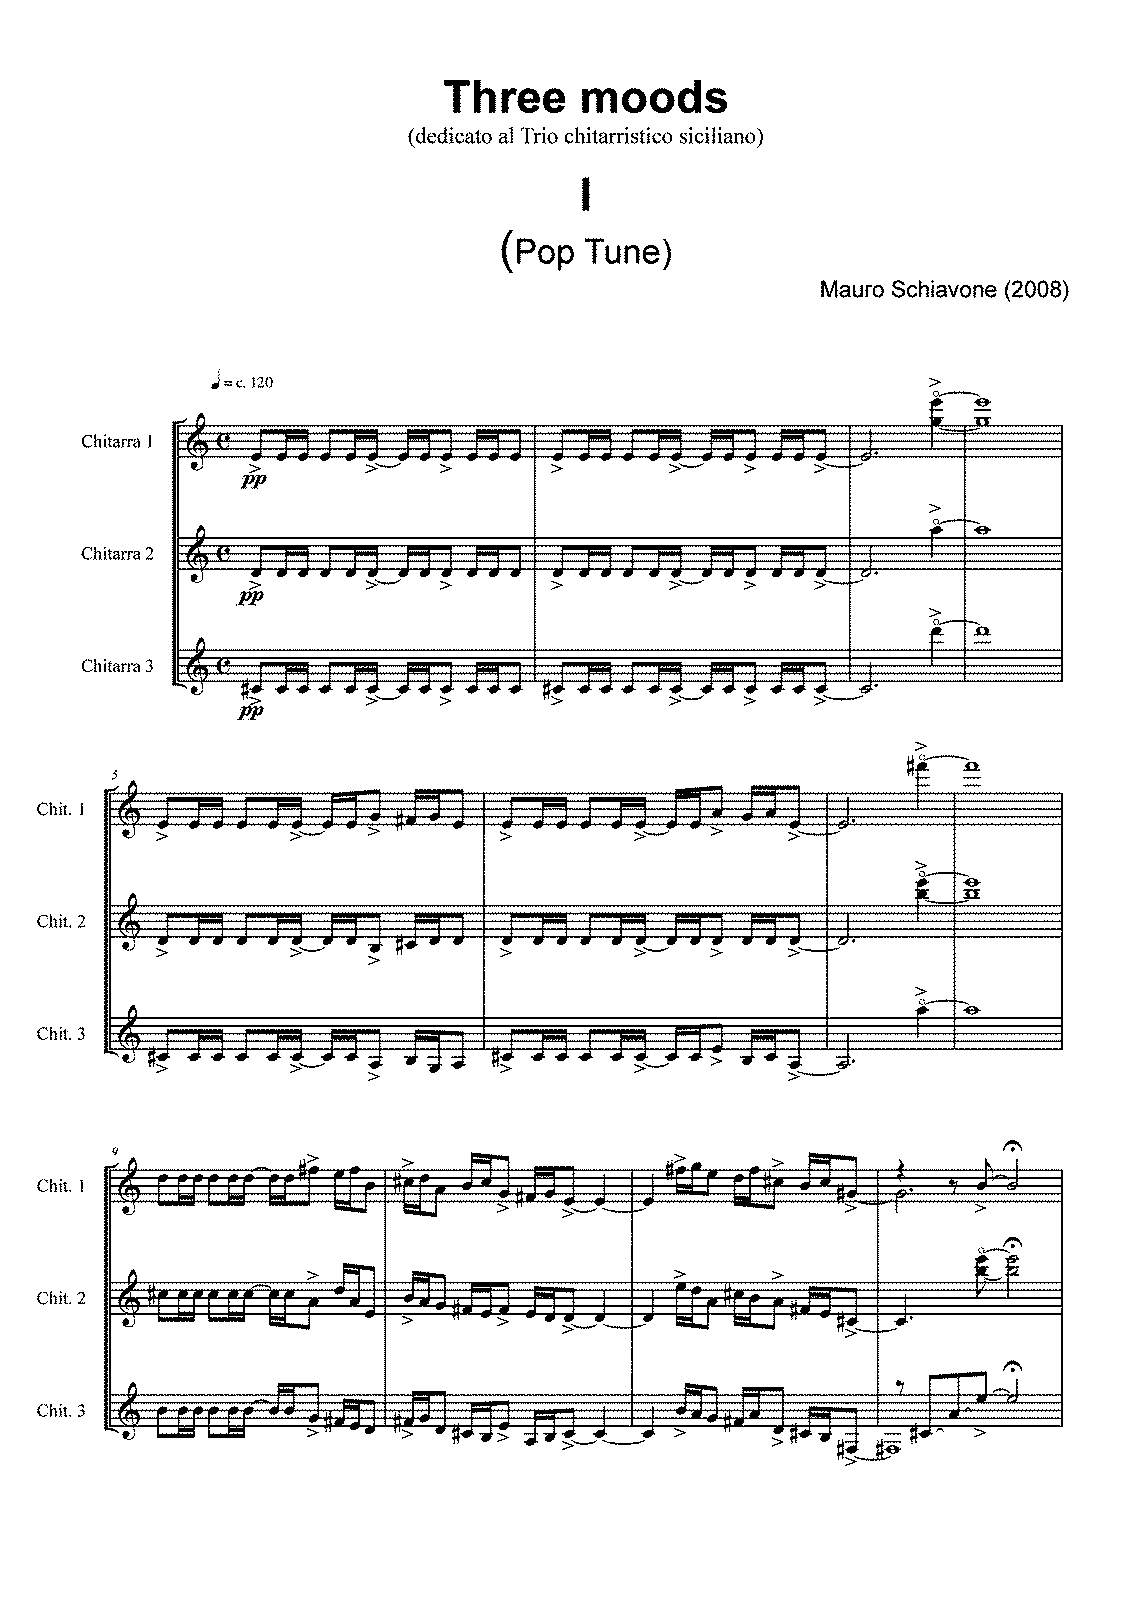 PMLP433491-I - Pop Tune.pdf